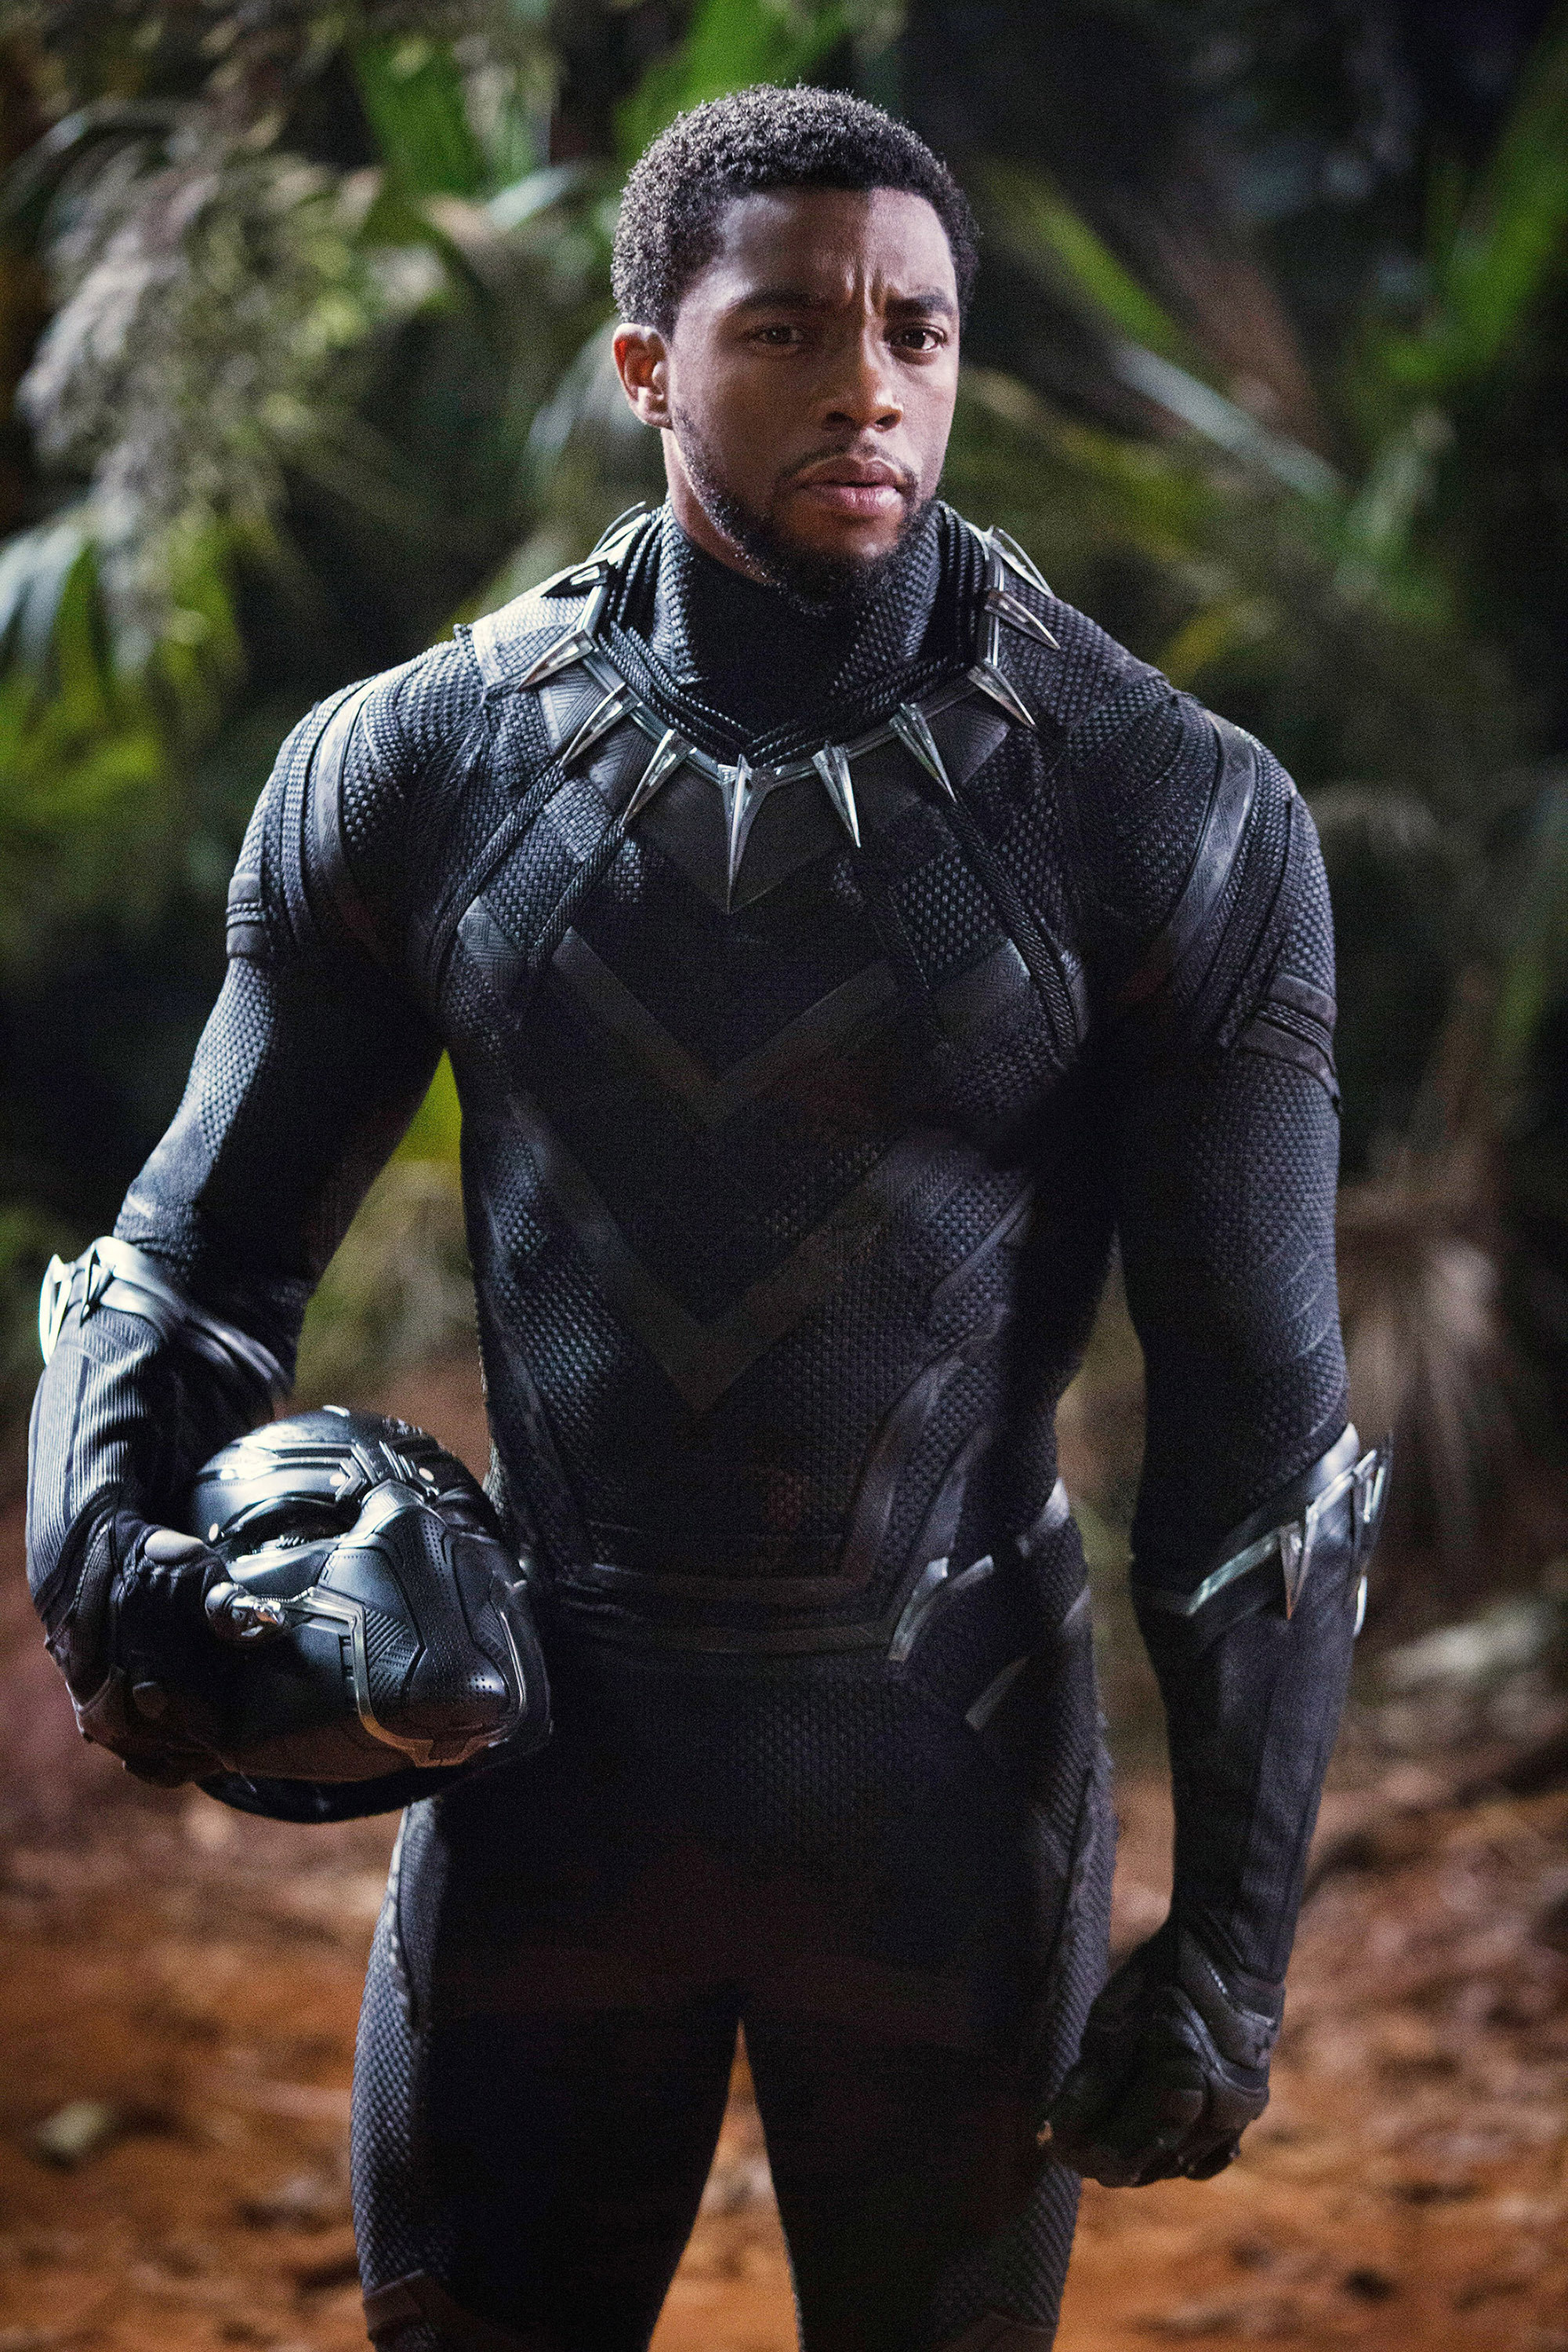 Chadwick Boseman as Black Panther holding his helmet